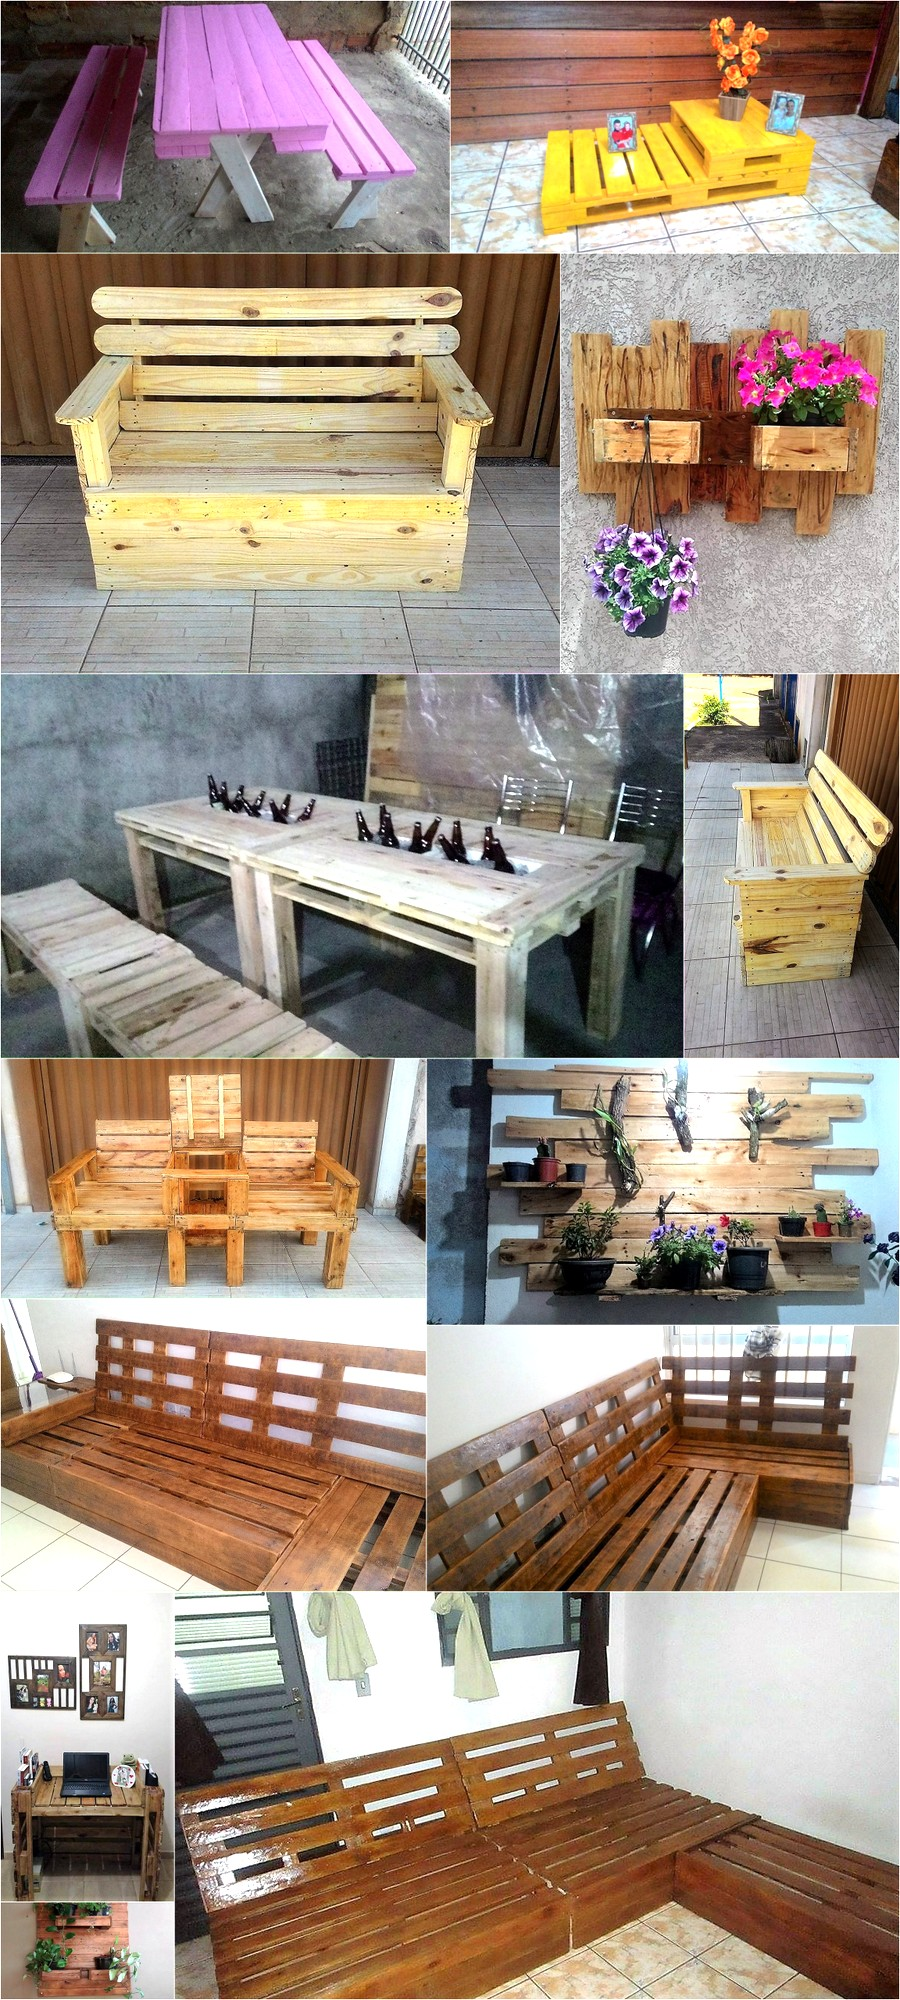 pallet-recycled-creations-by-artede-paletes